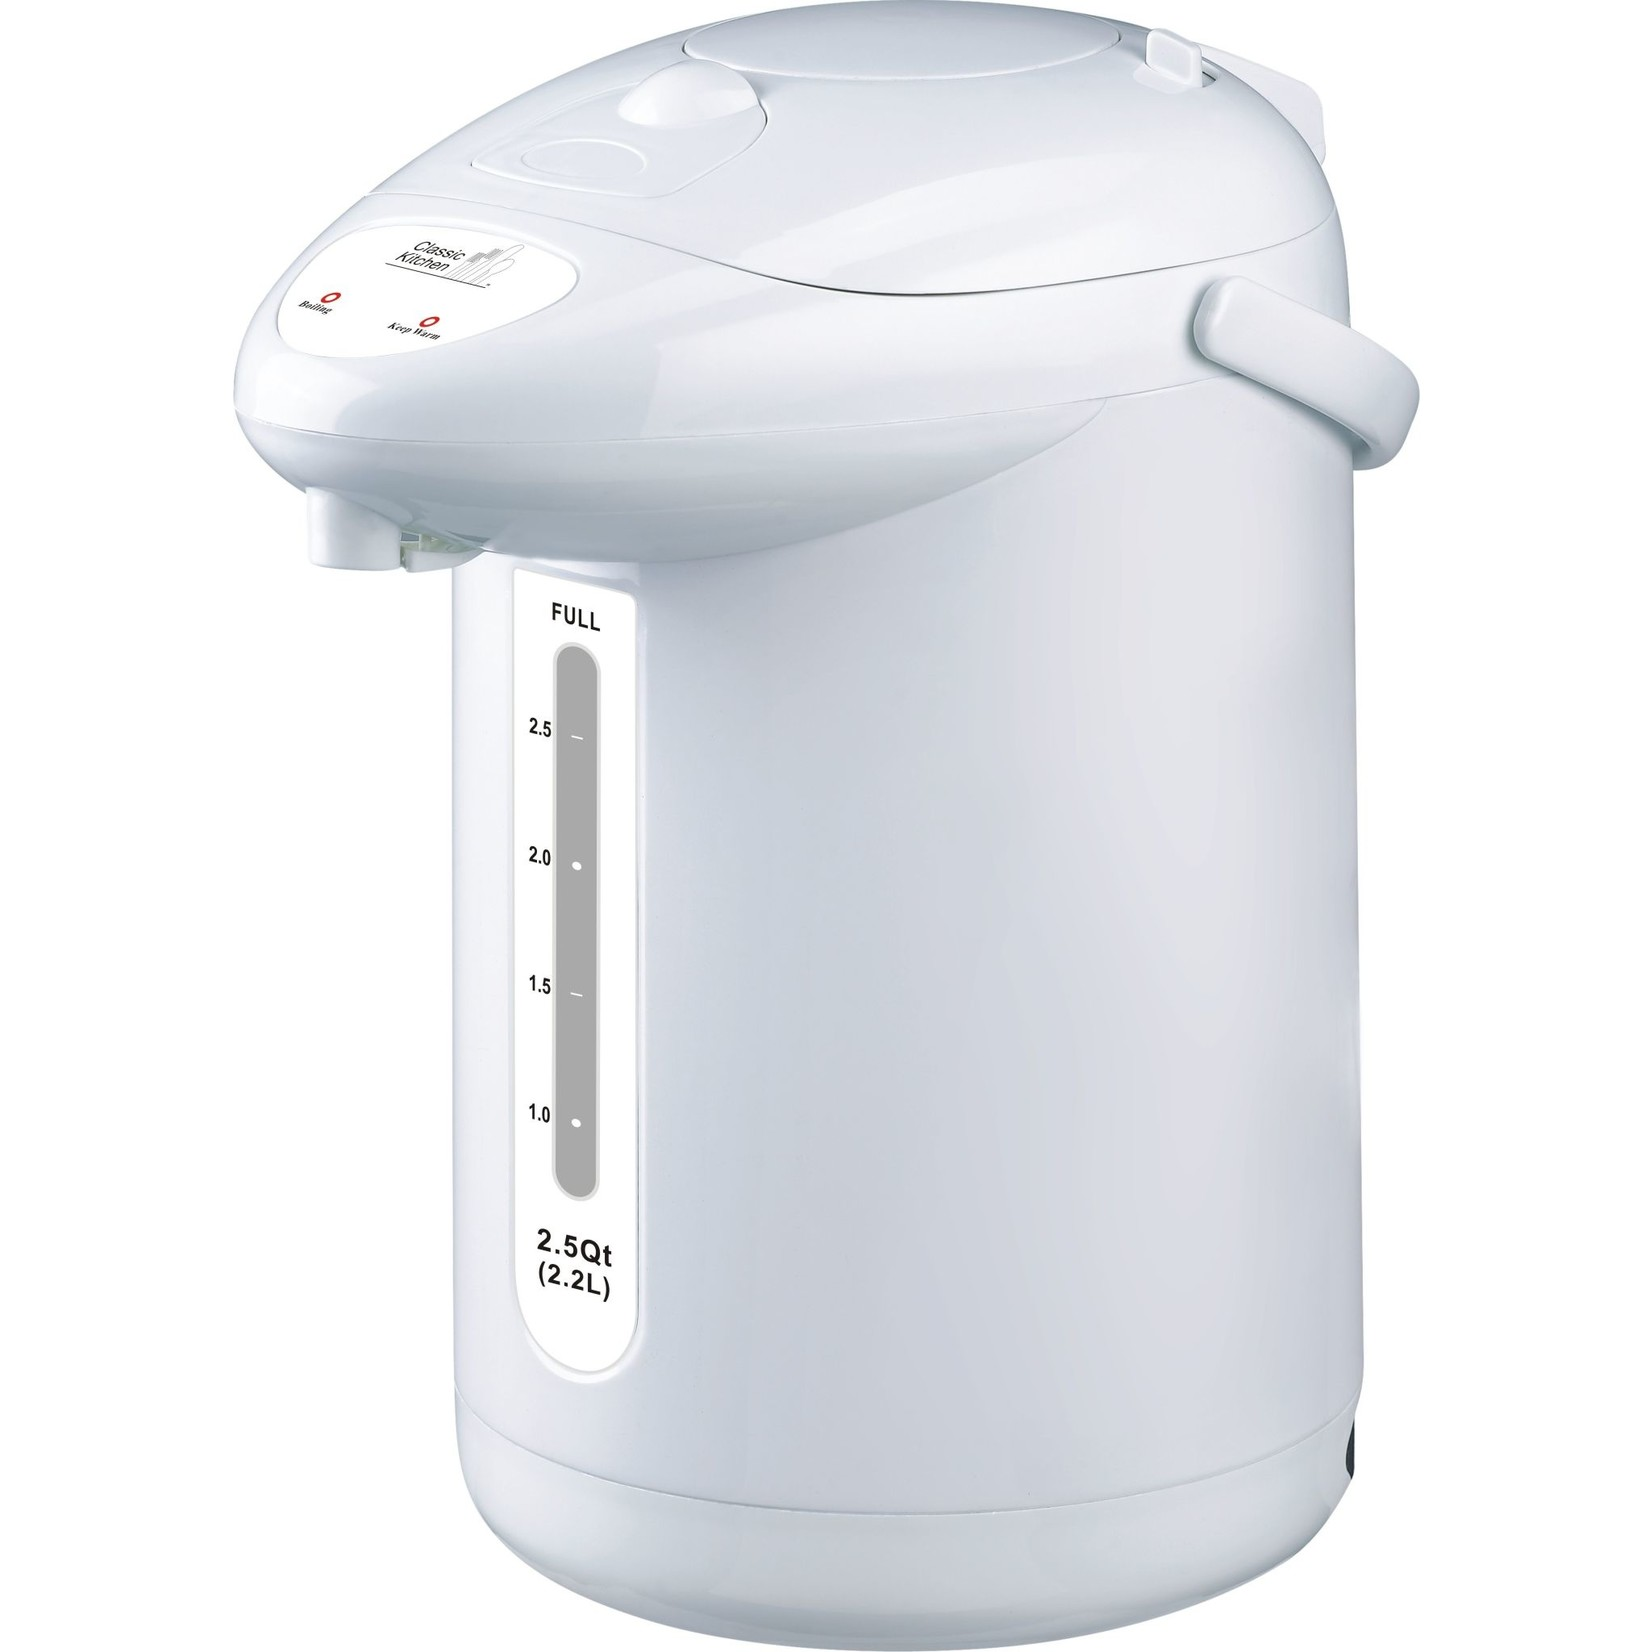 Classic Kitchen Water Heater with Pump Dispenser - 12 Cup